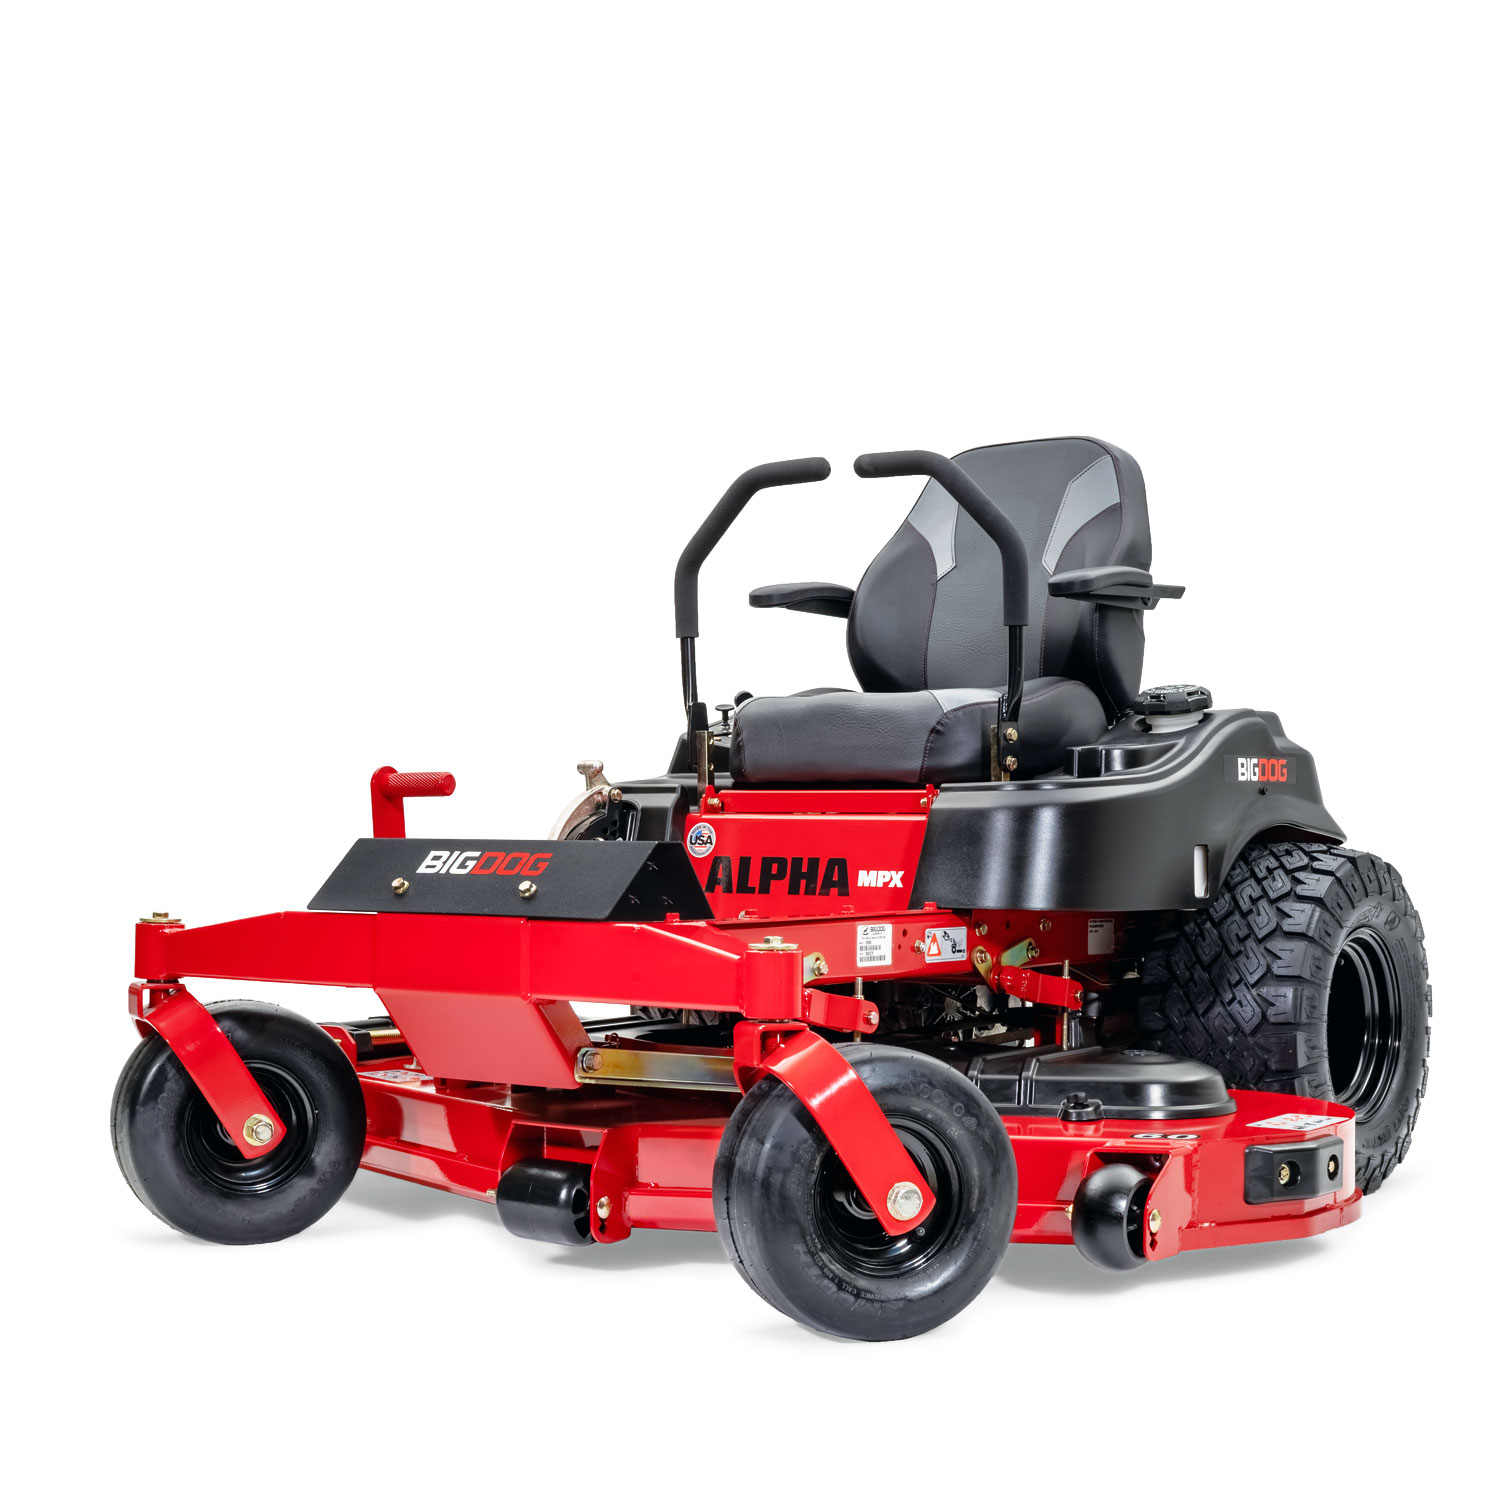 Image of front three quarters of red mower showing trim edge of deck